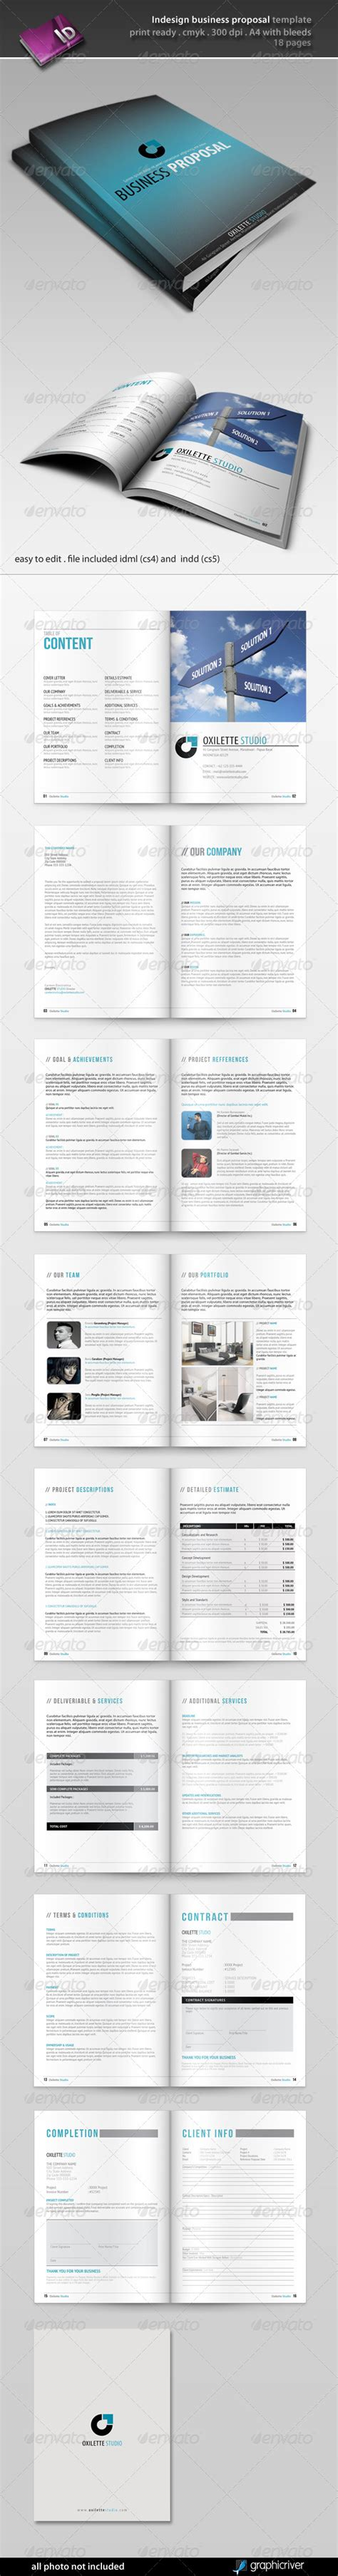 free business template indesign indesign business template project